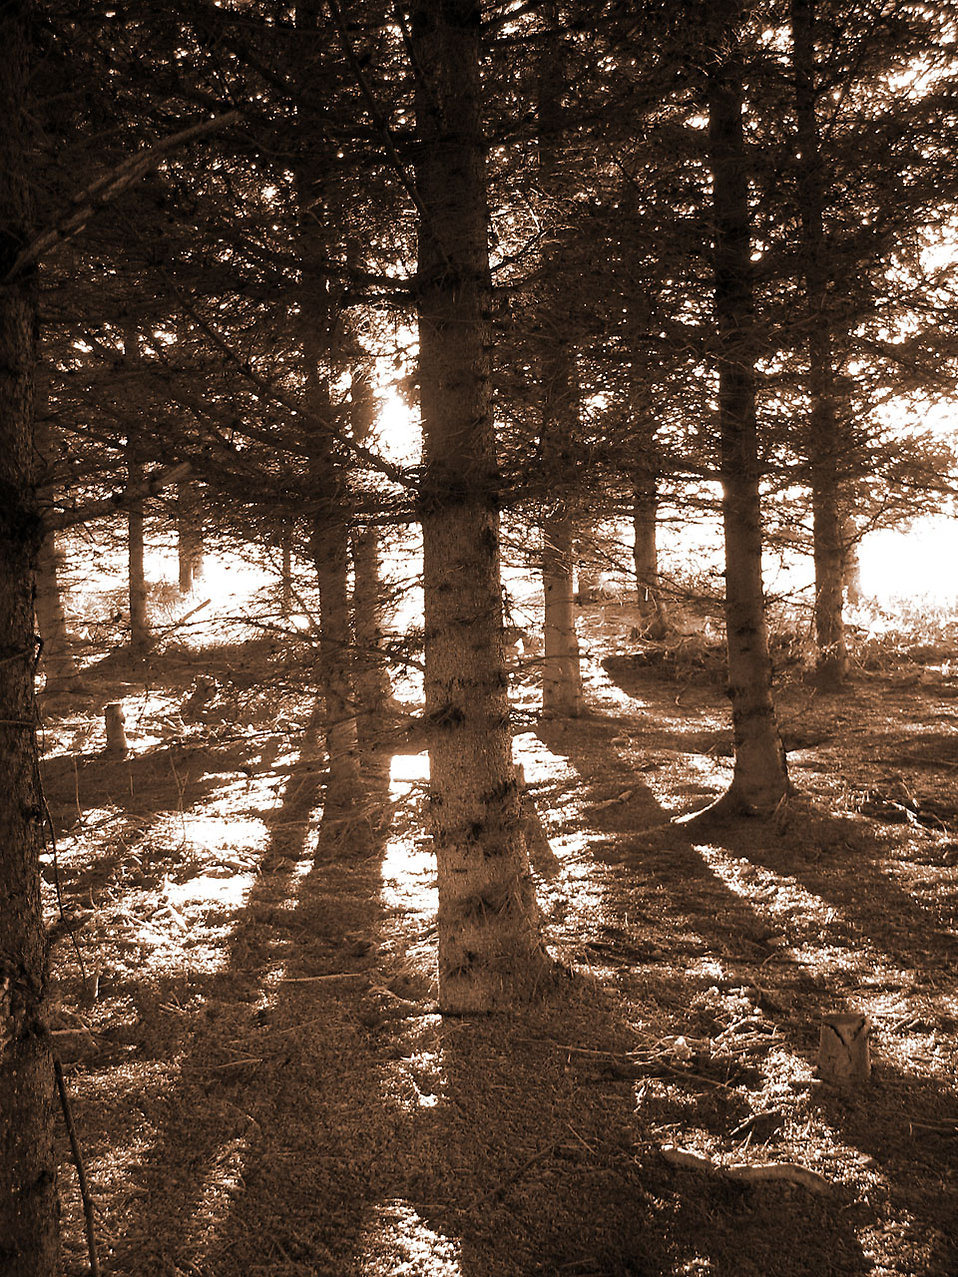 http://res.freestockphotos.biz/pictures/5/5690-black-and-white-shadows-in-the-woods-pv.jpg